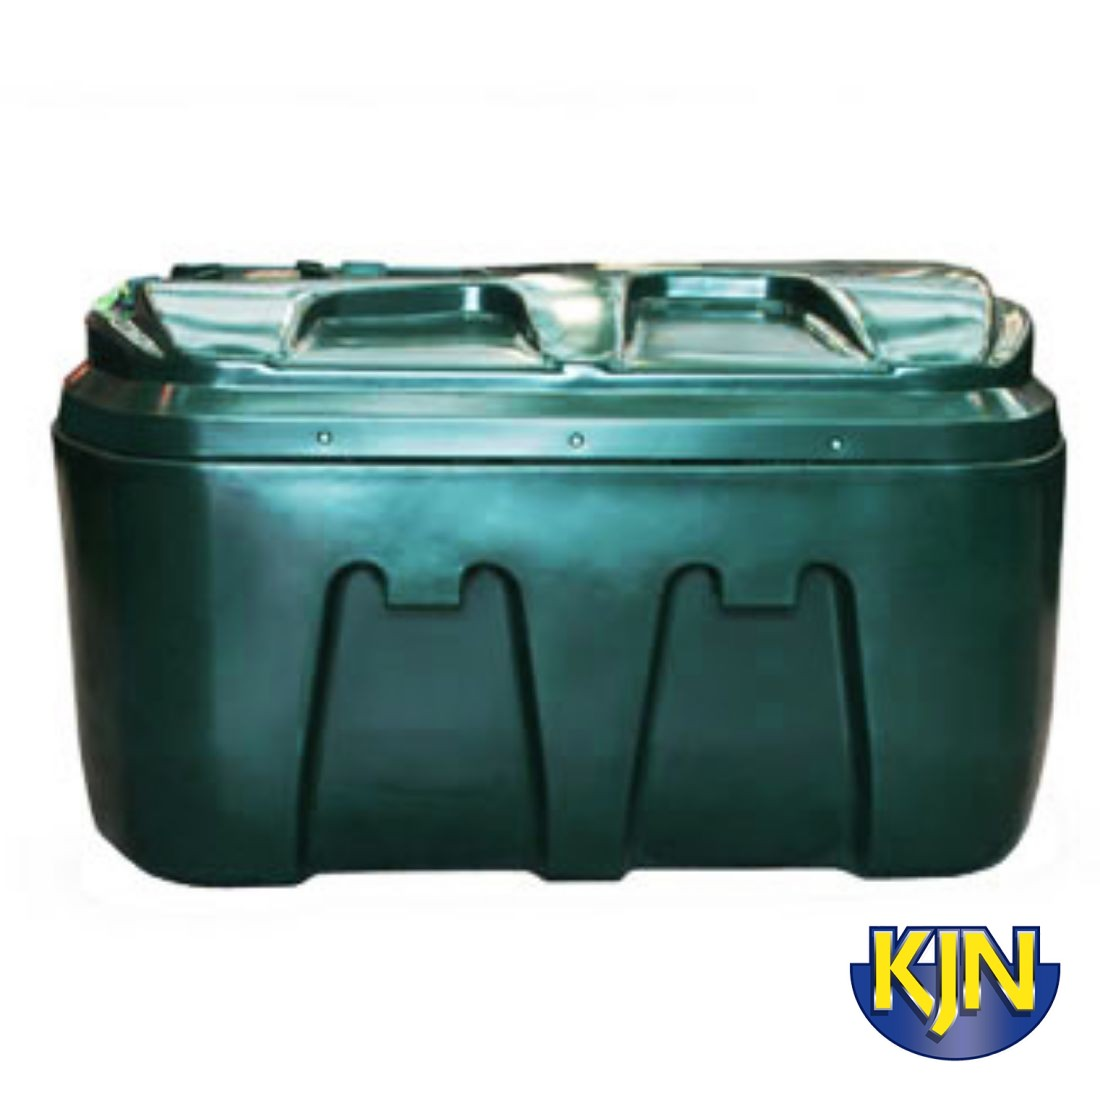 Titan Ecosafe Bunded Low Profile Tank 1200 Litre Bottom Or Top Outlet